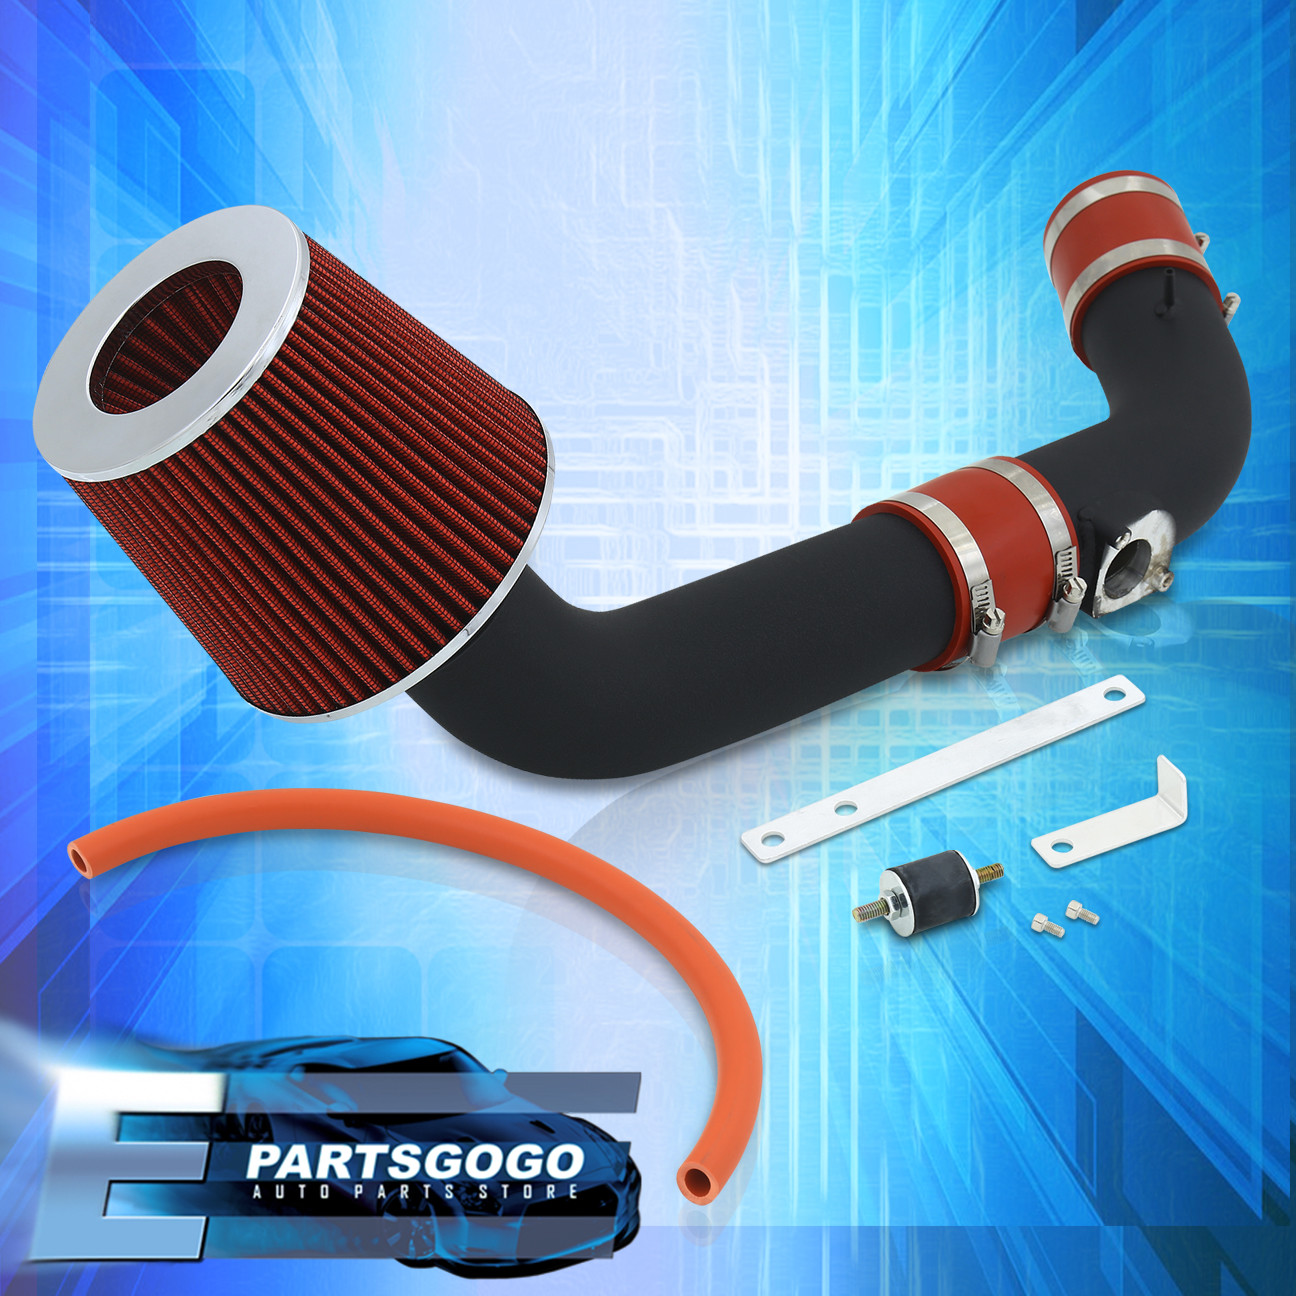 90-93 HONDA ACCORD DX LX EX SE 2.2L INDUCTION COLD AIR INTAKE+FILTER KIT JDM RED